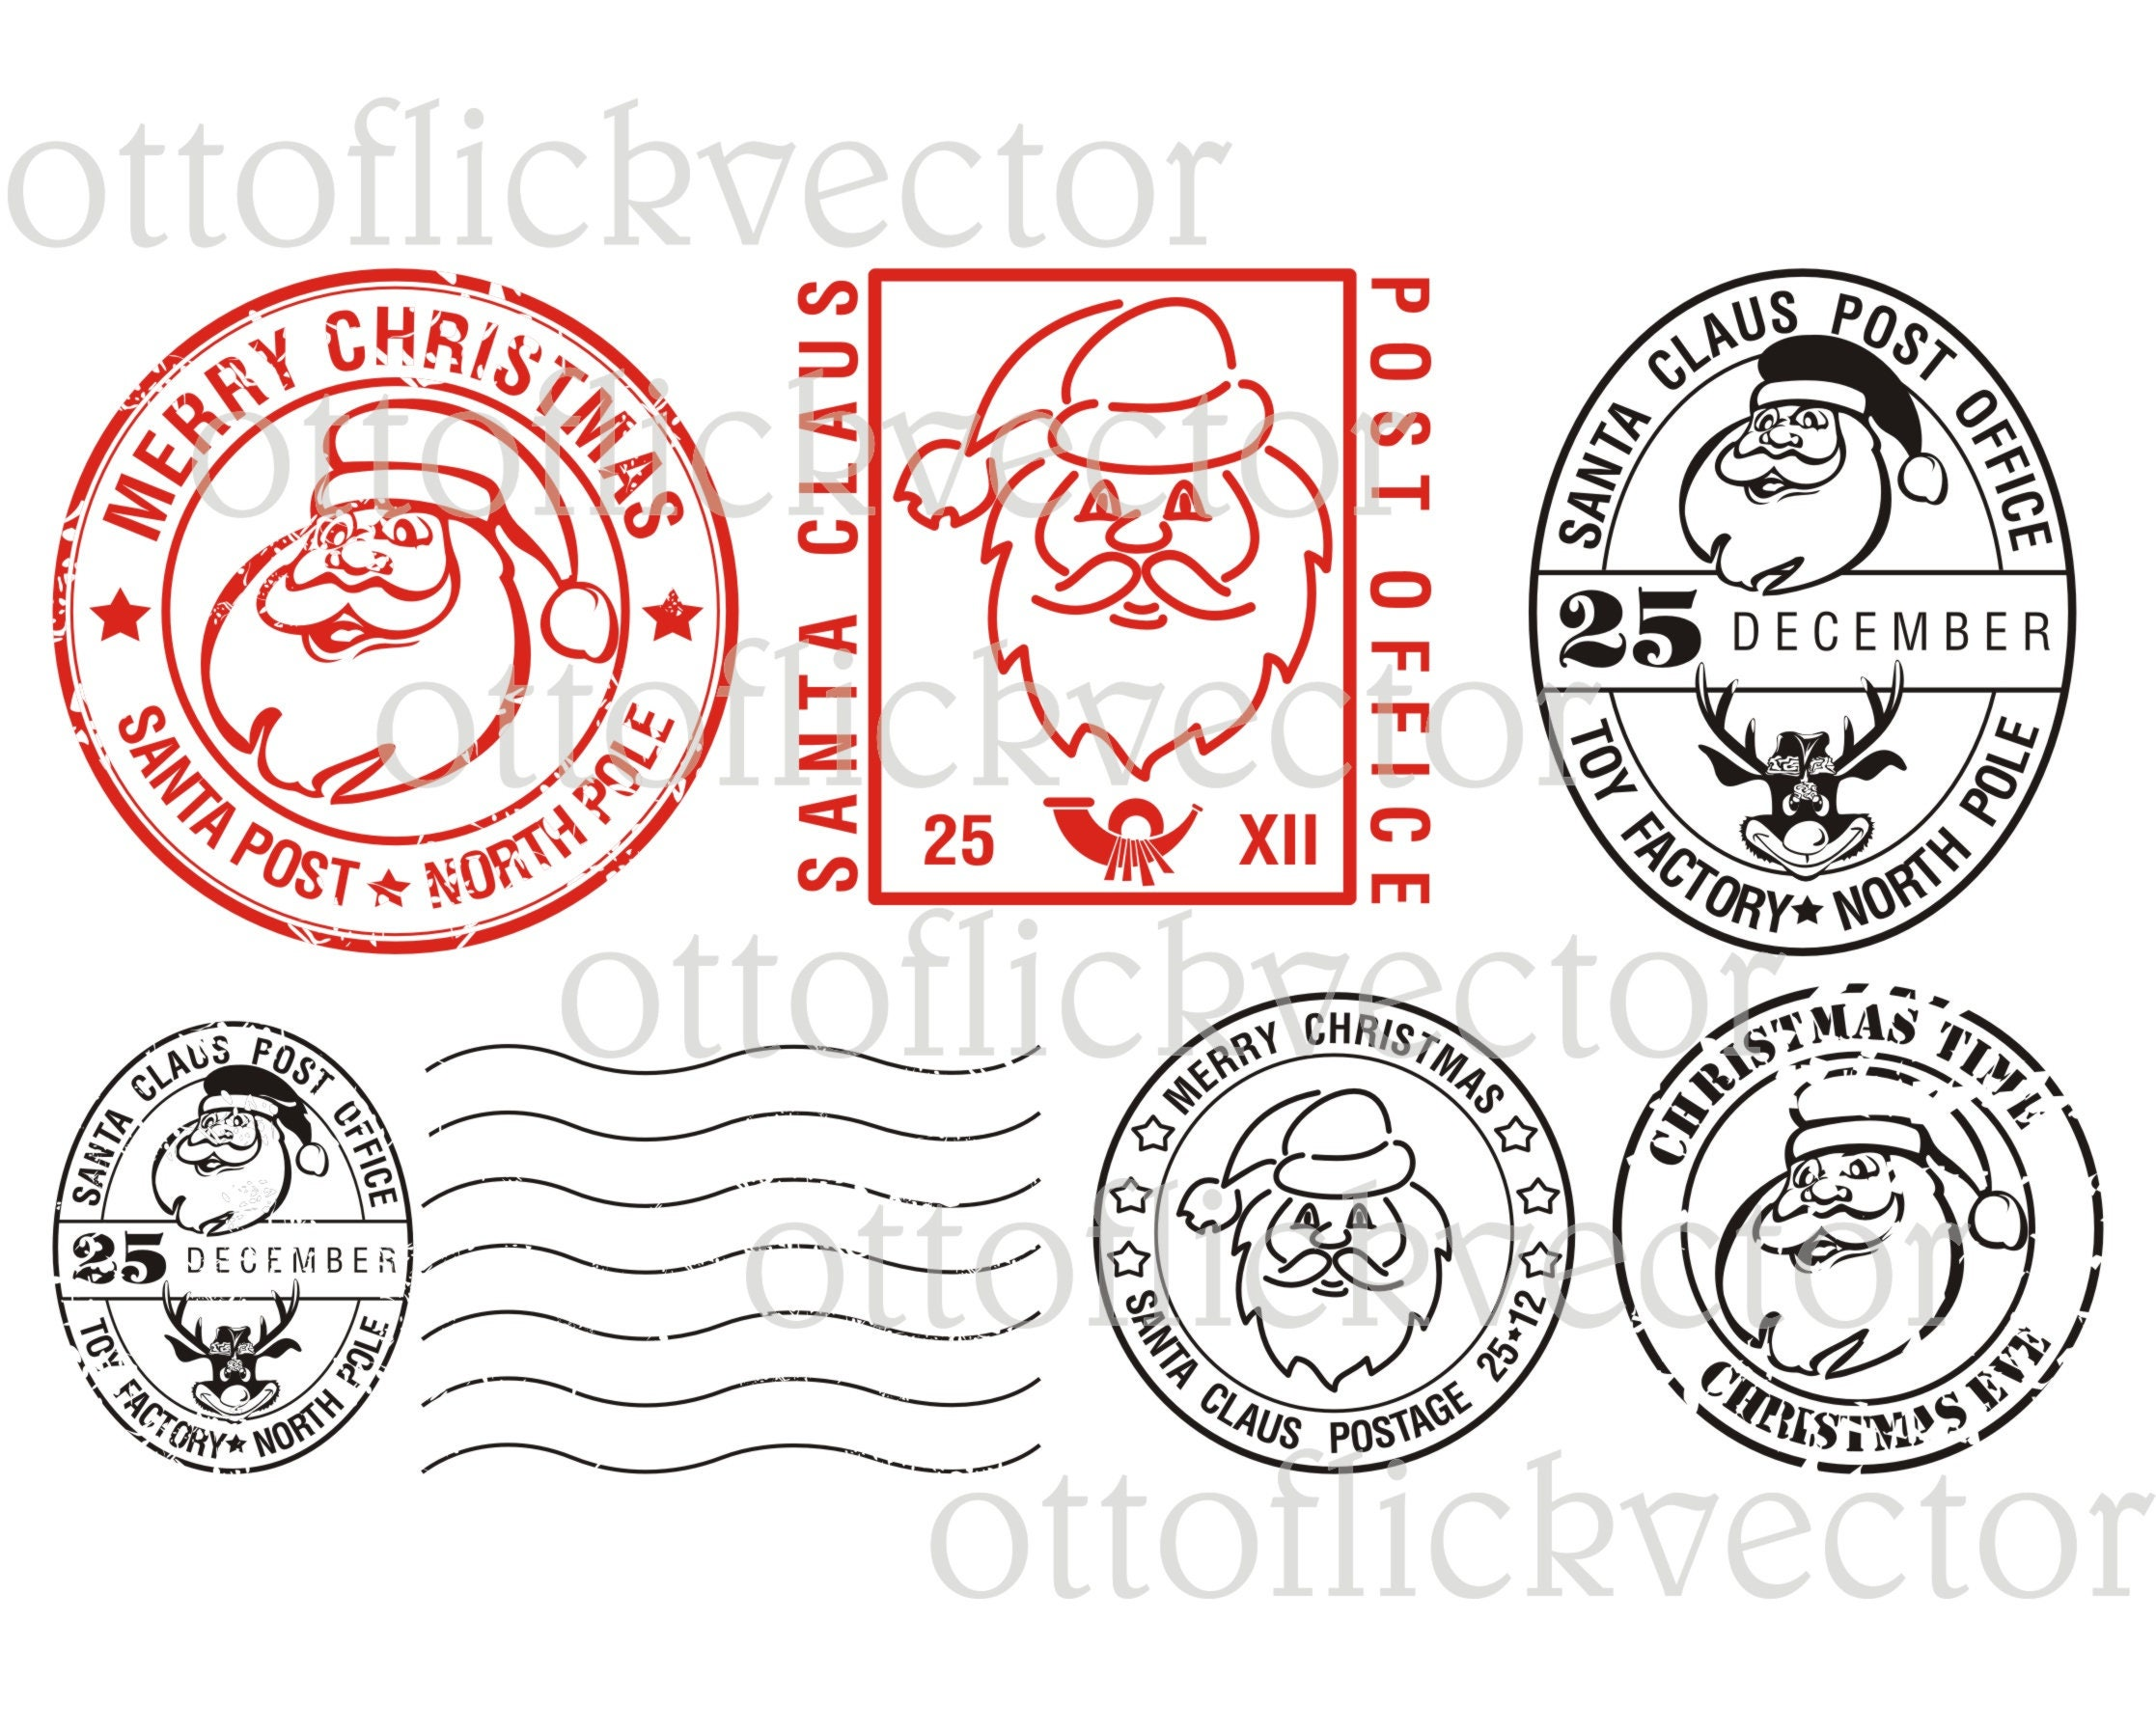 SANTA CLAUS CLIPART christmas stamp clipart eps ai cdr | Etsy